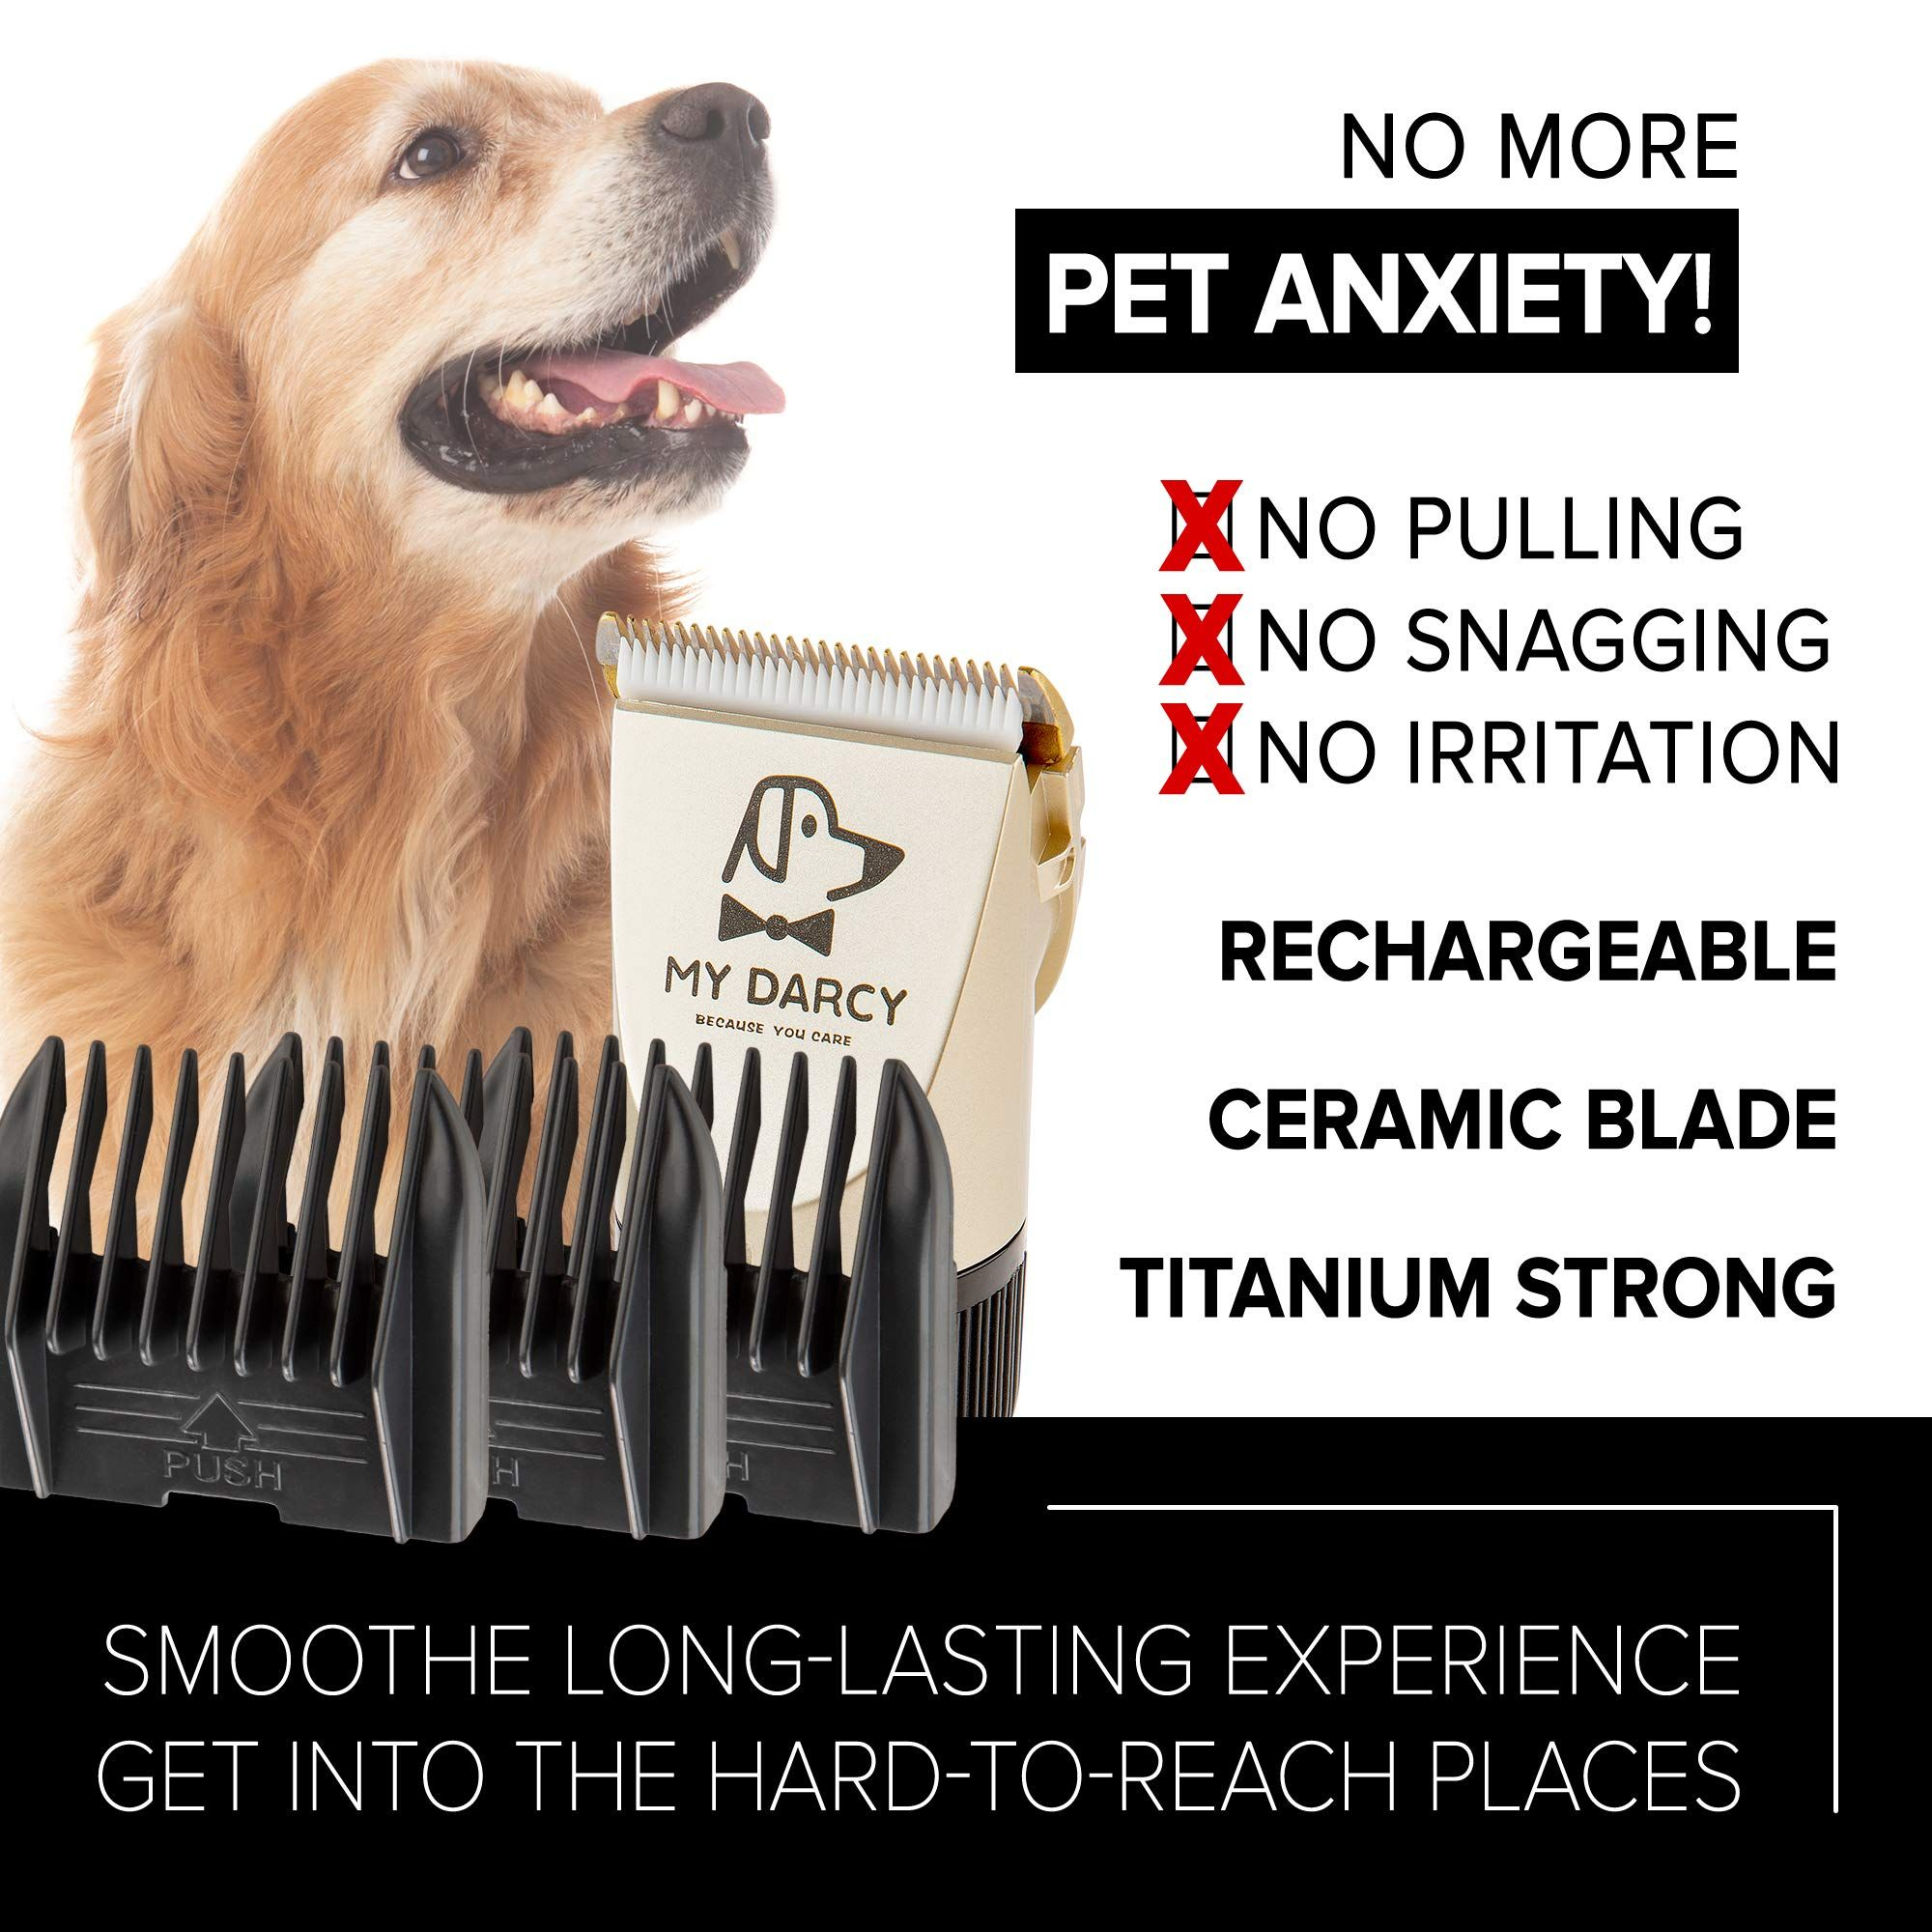 My Darcy Professional Dog Grooming Kit For Pets Check Out This Great Product It Is An Affiliate Link To Am In 2020 Dog Grooming Dog Grooming Supplies Grooming Kit